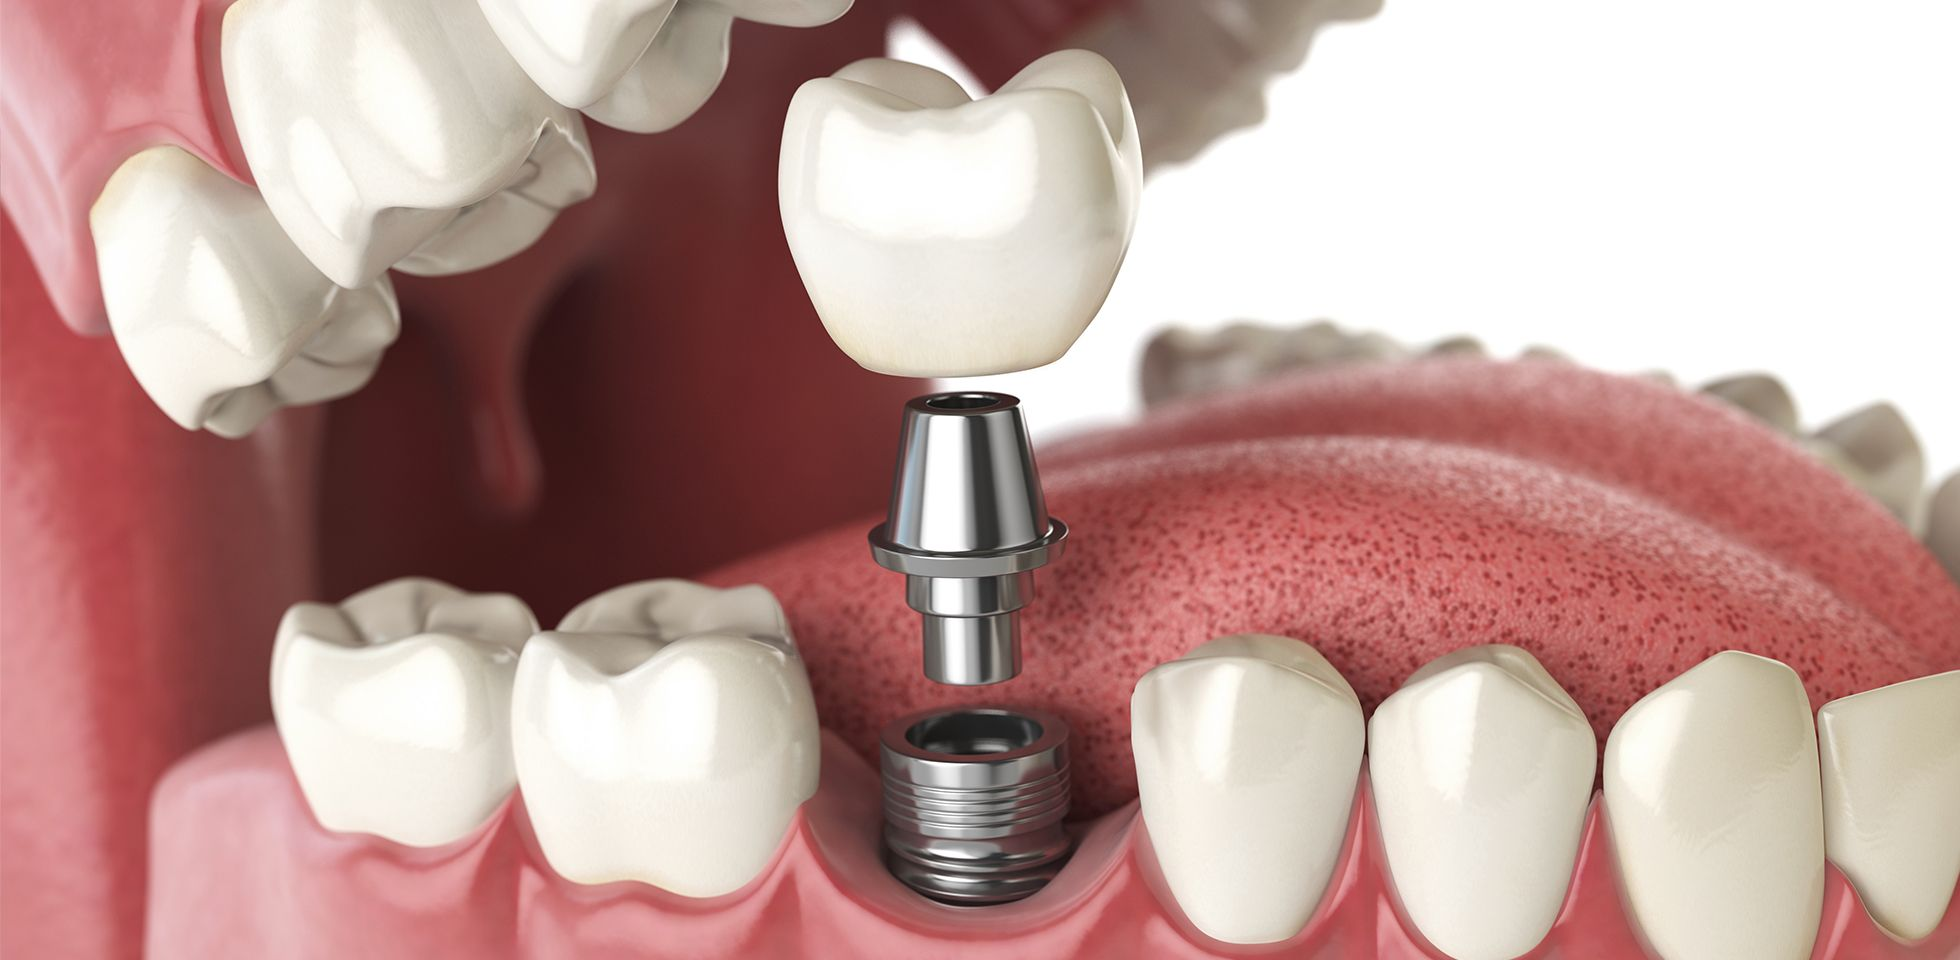 Here are the advantages of why ceramic best dental implants liverpool are the chosen option for multiple implant surgeons